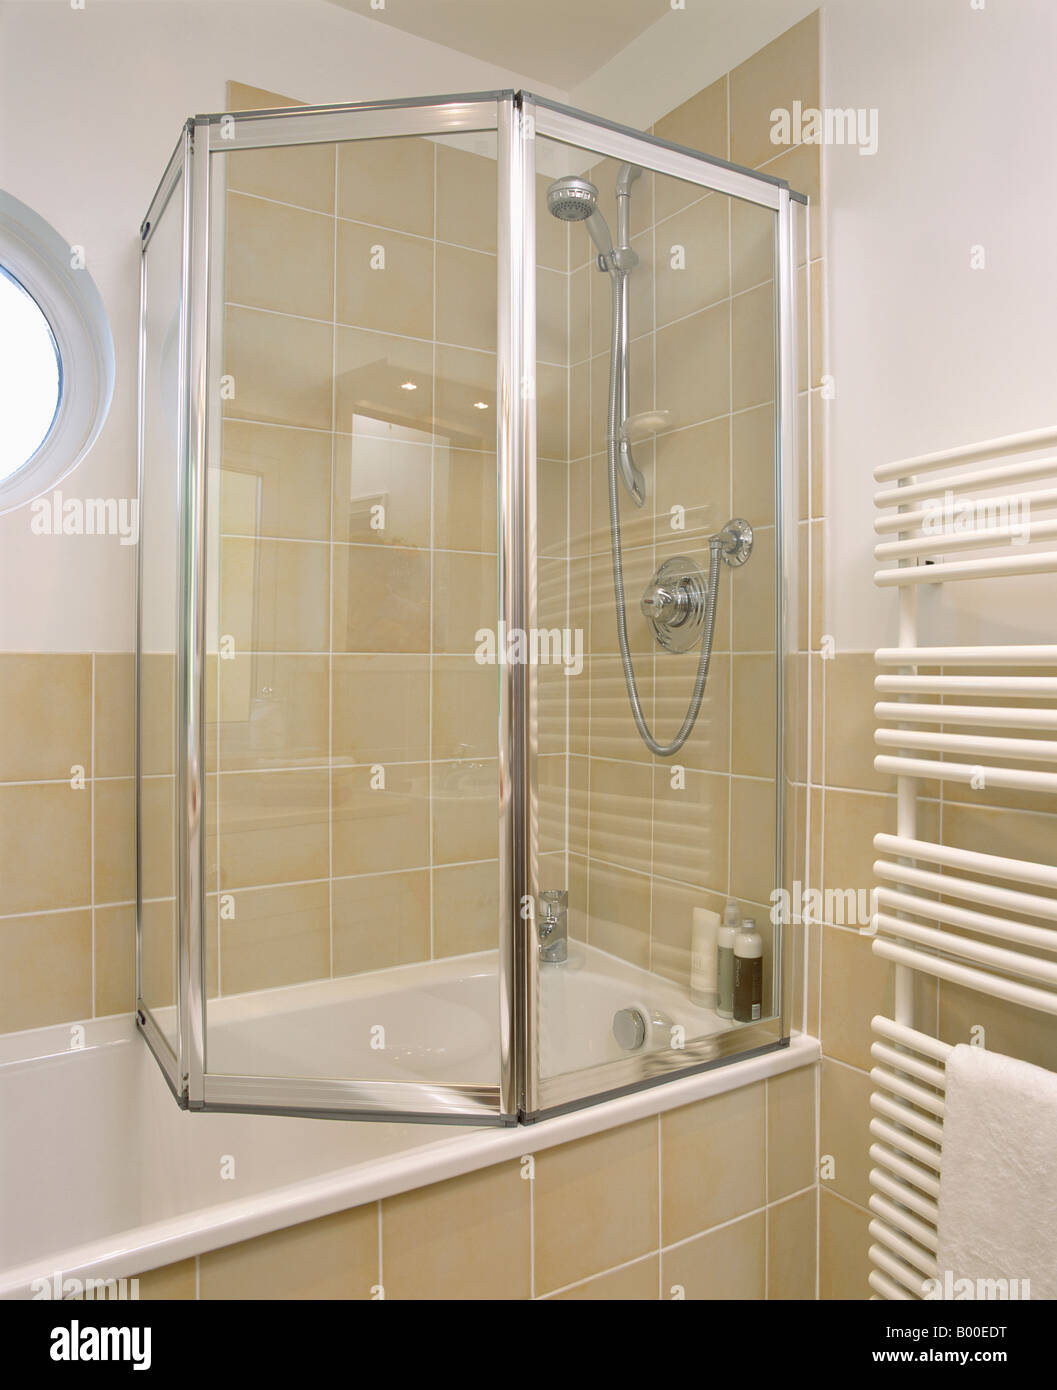 Folding glass shower doors on bath in modern bathroom with neutral wall tiles : bath doors - pezcame.com